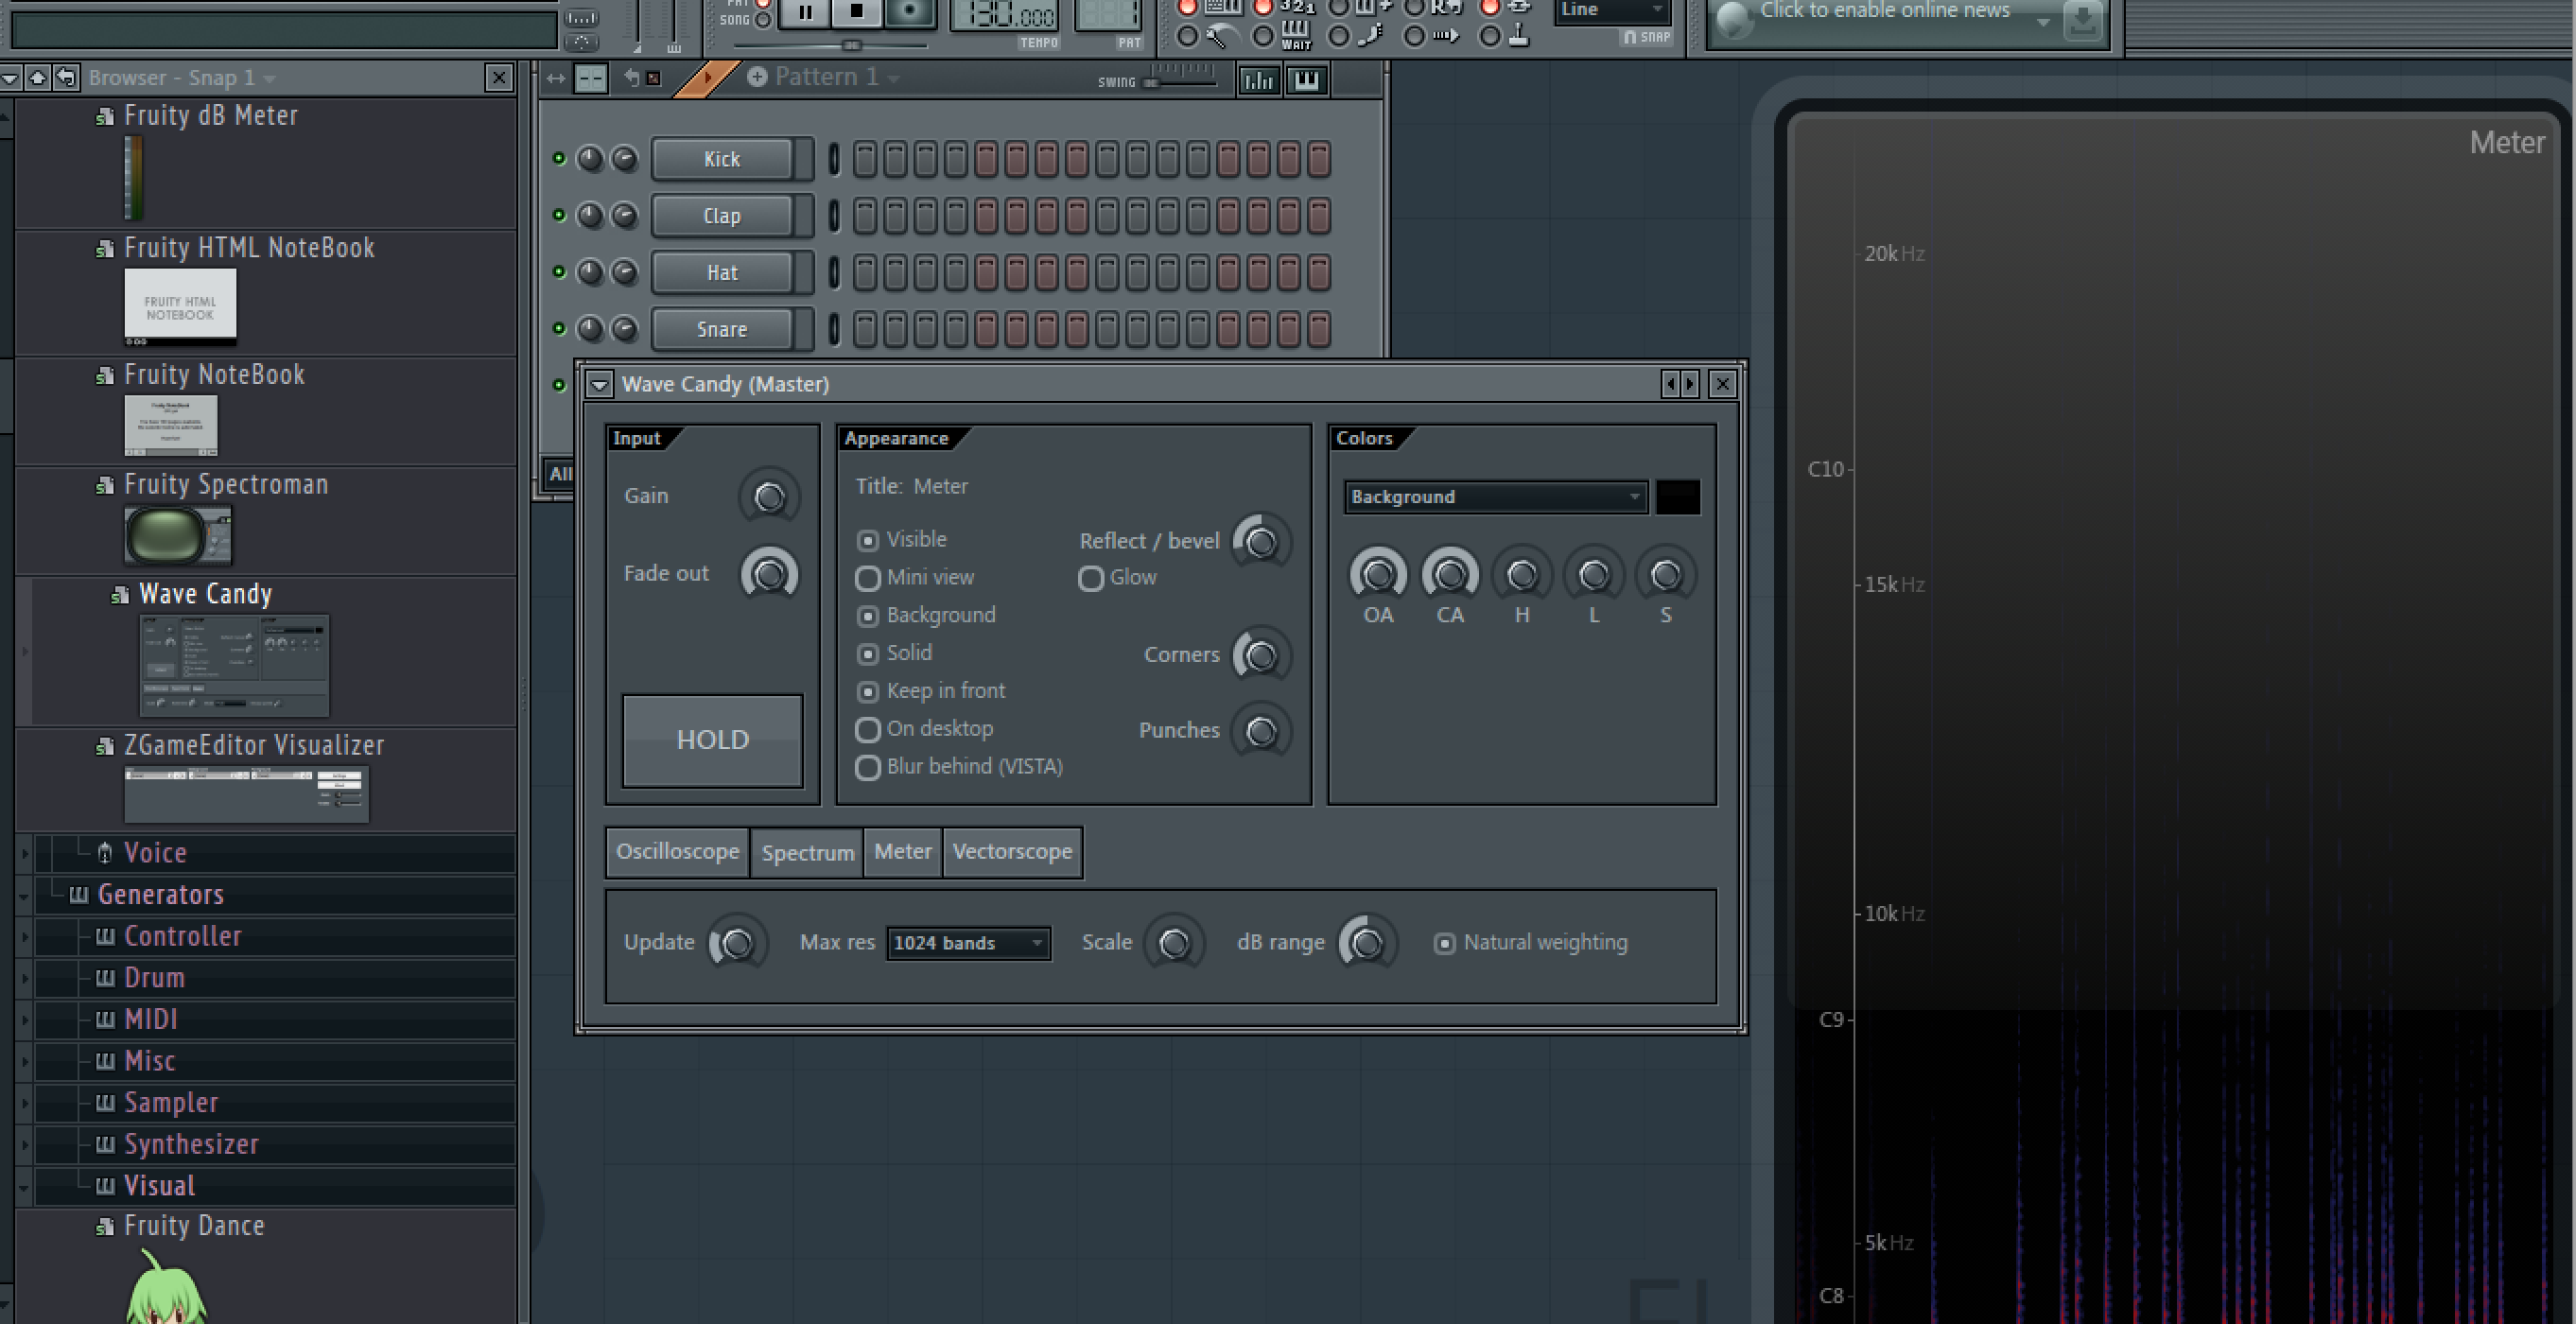 FL Studio Tutorial: Become a Power User 7 - Working With